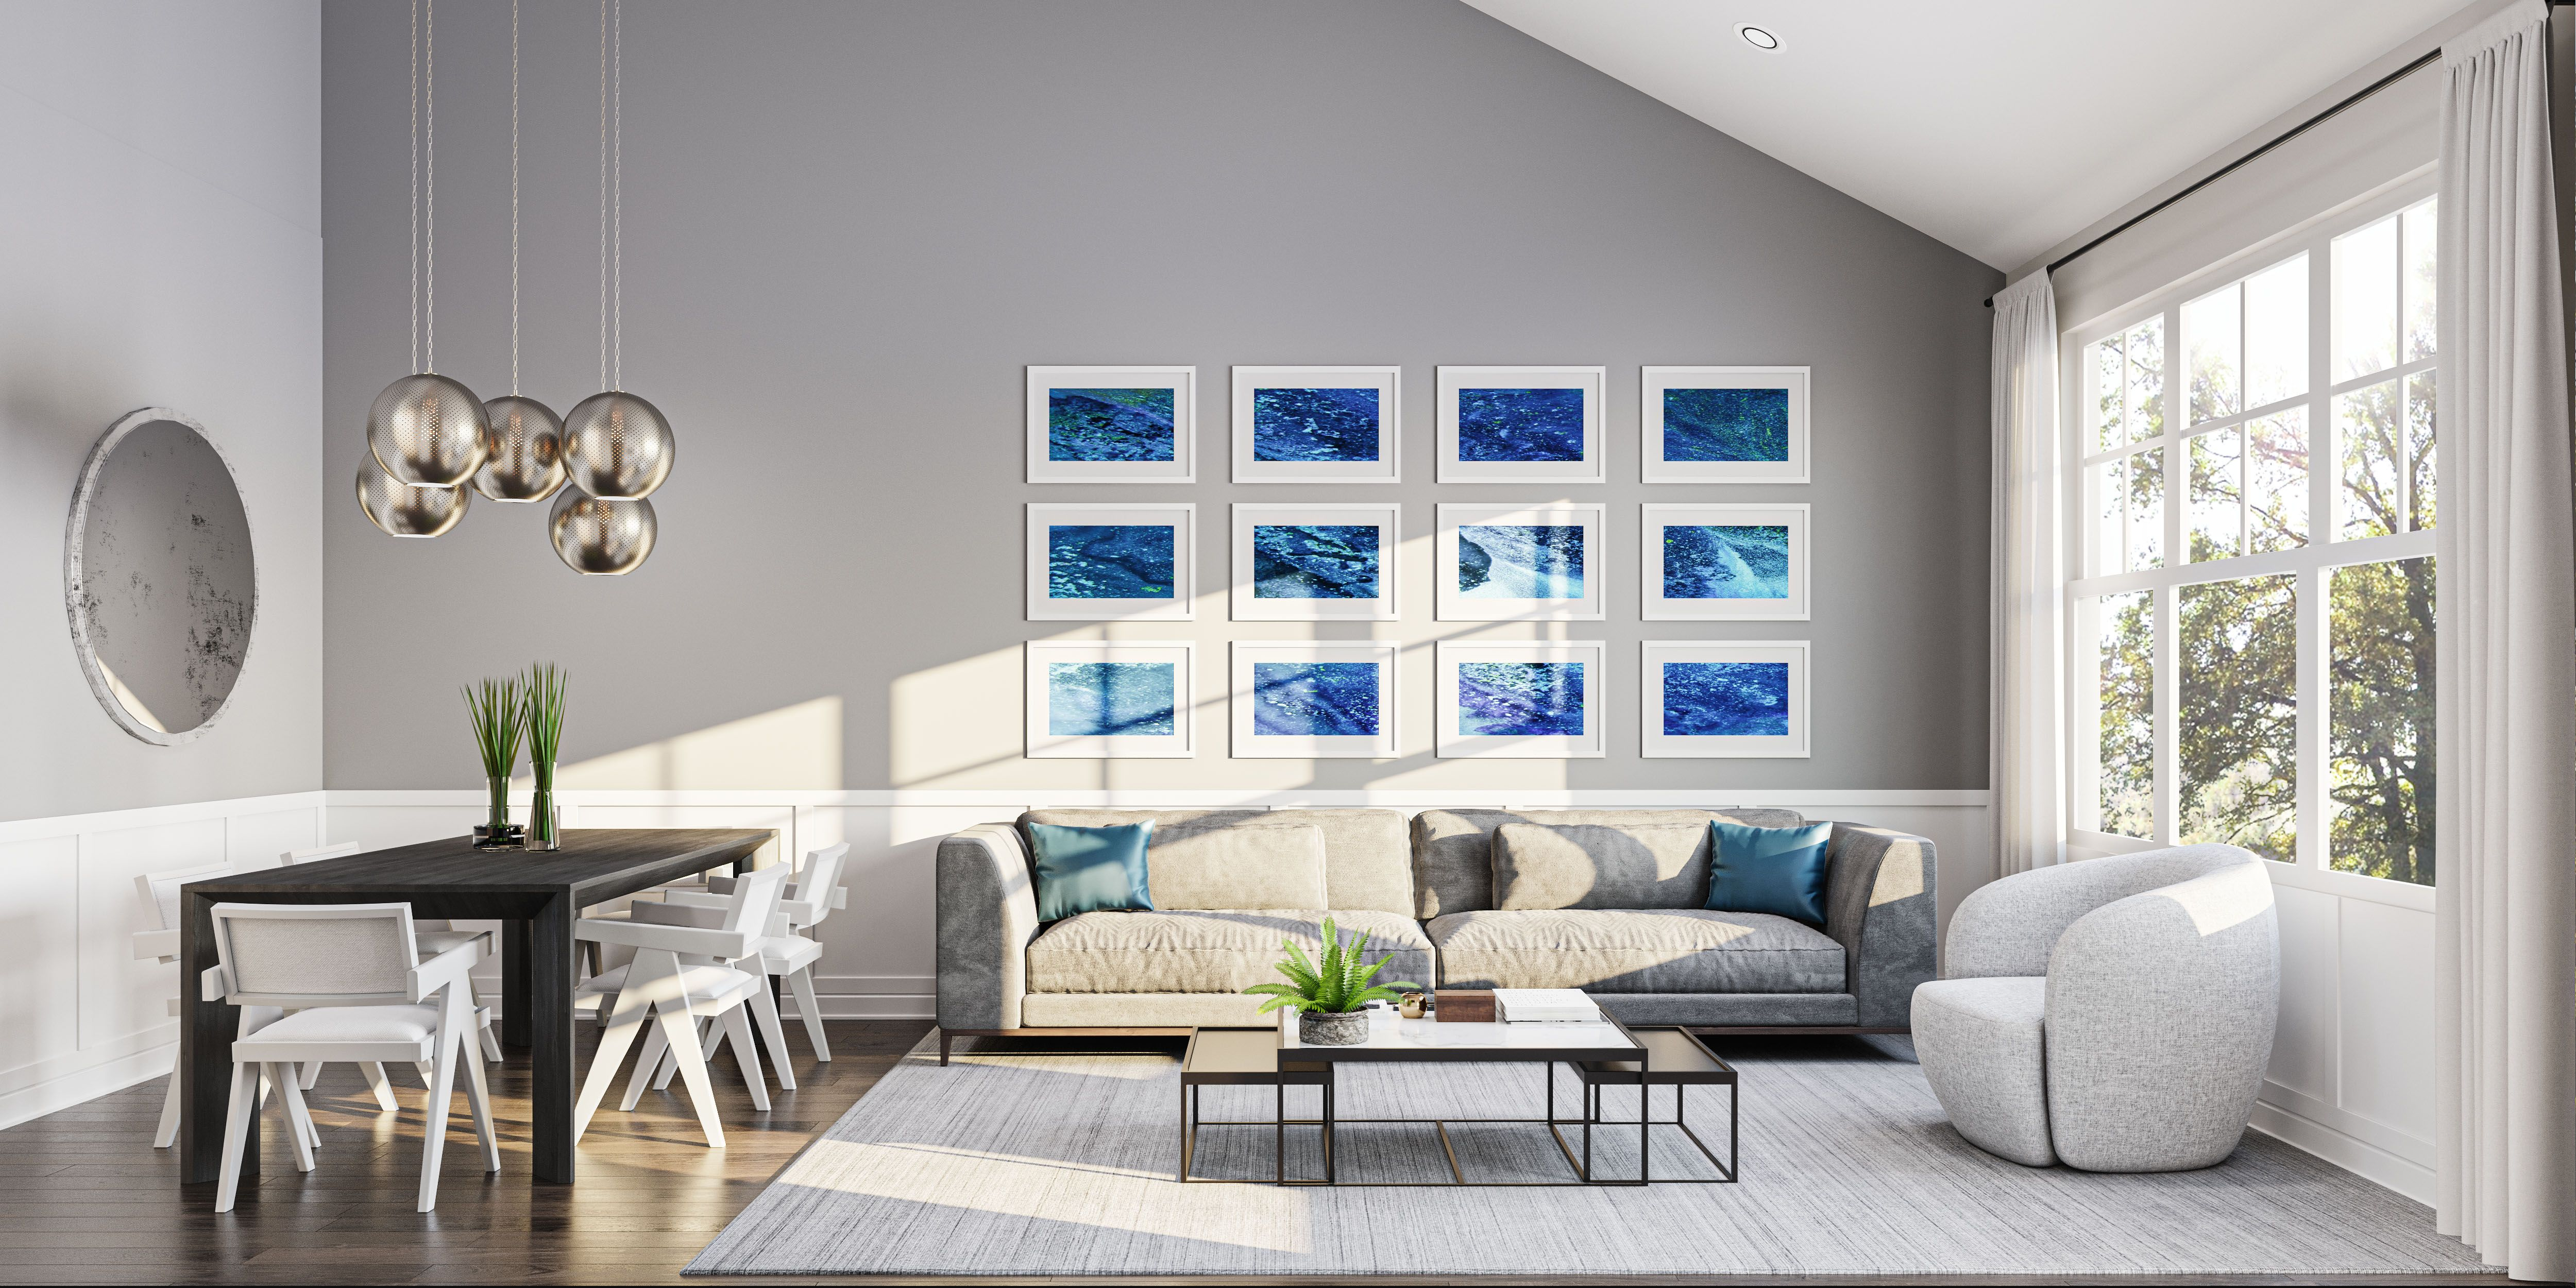 Living Area featured in The Doncaster By Beechwood Homes in Nassau-Suffolk, NY